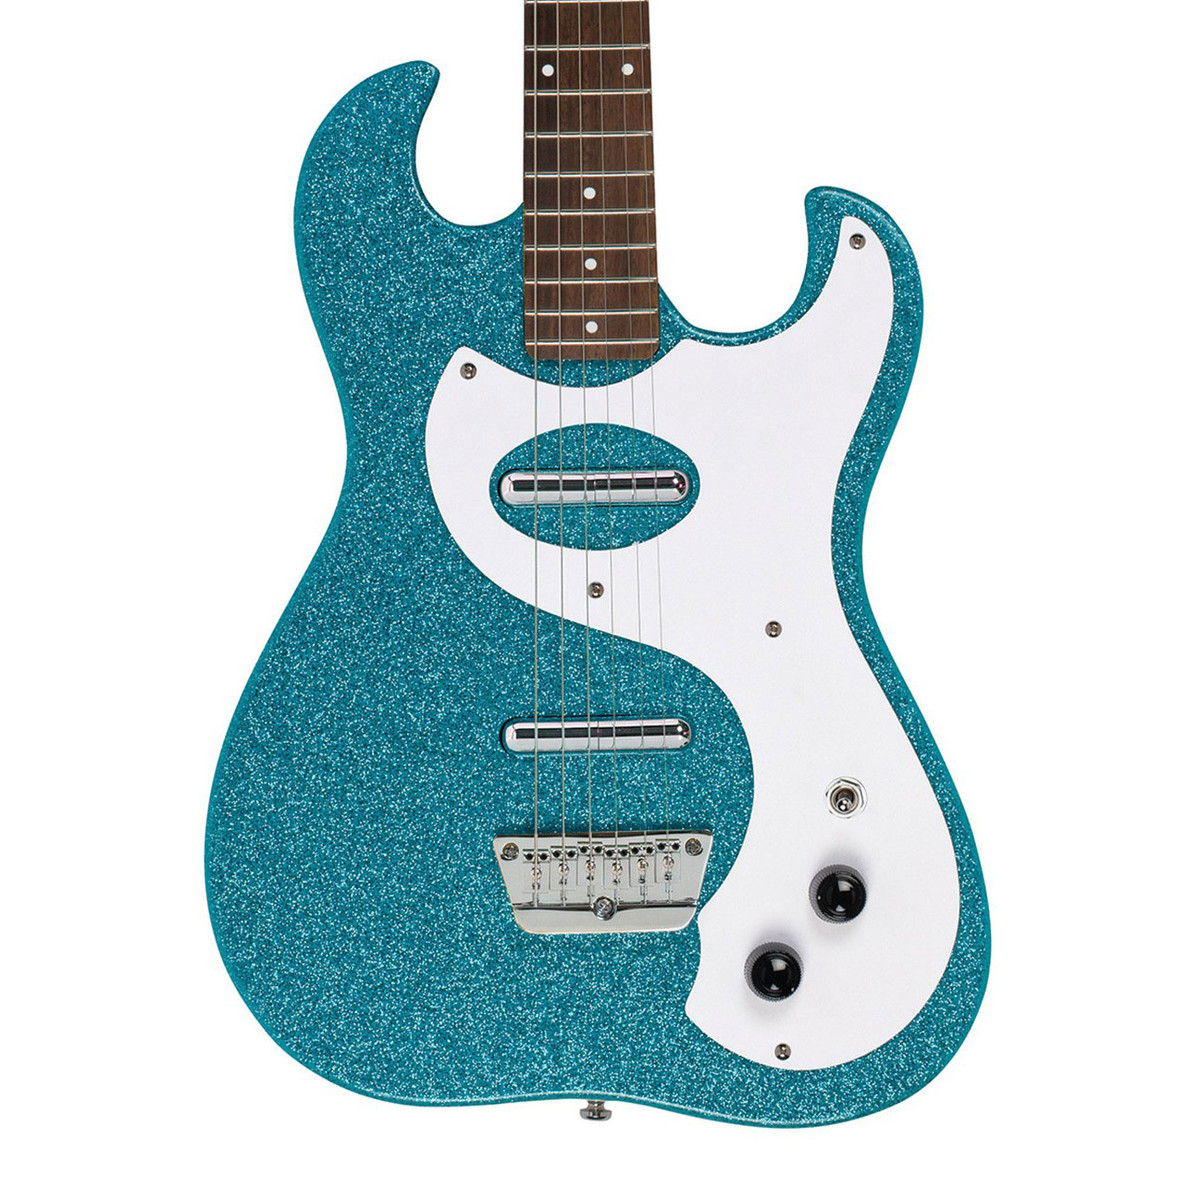 danelectro 63 double cutaway electric guitar turquoise metal flake at. Black Bedroom Furniture Sets. Home Design Ideas